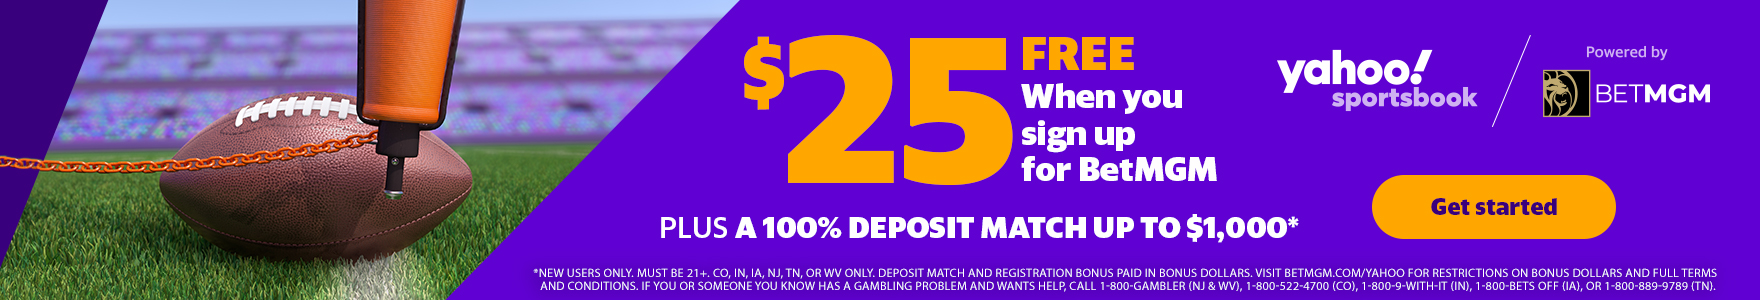 100% Deposit Match. Up to $1,000, new users only. Powered By Bet MGM. Bet now!